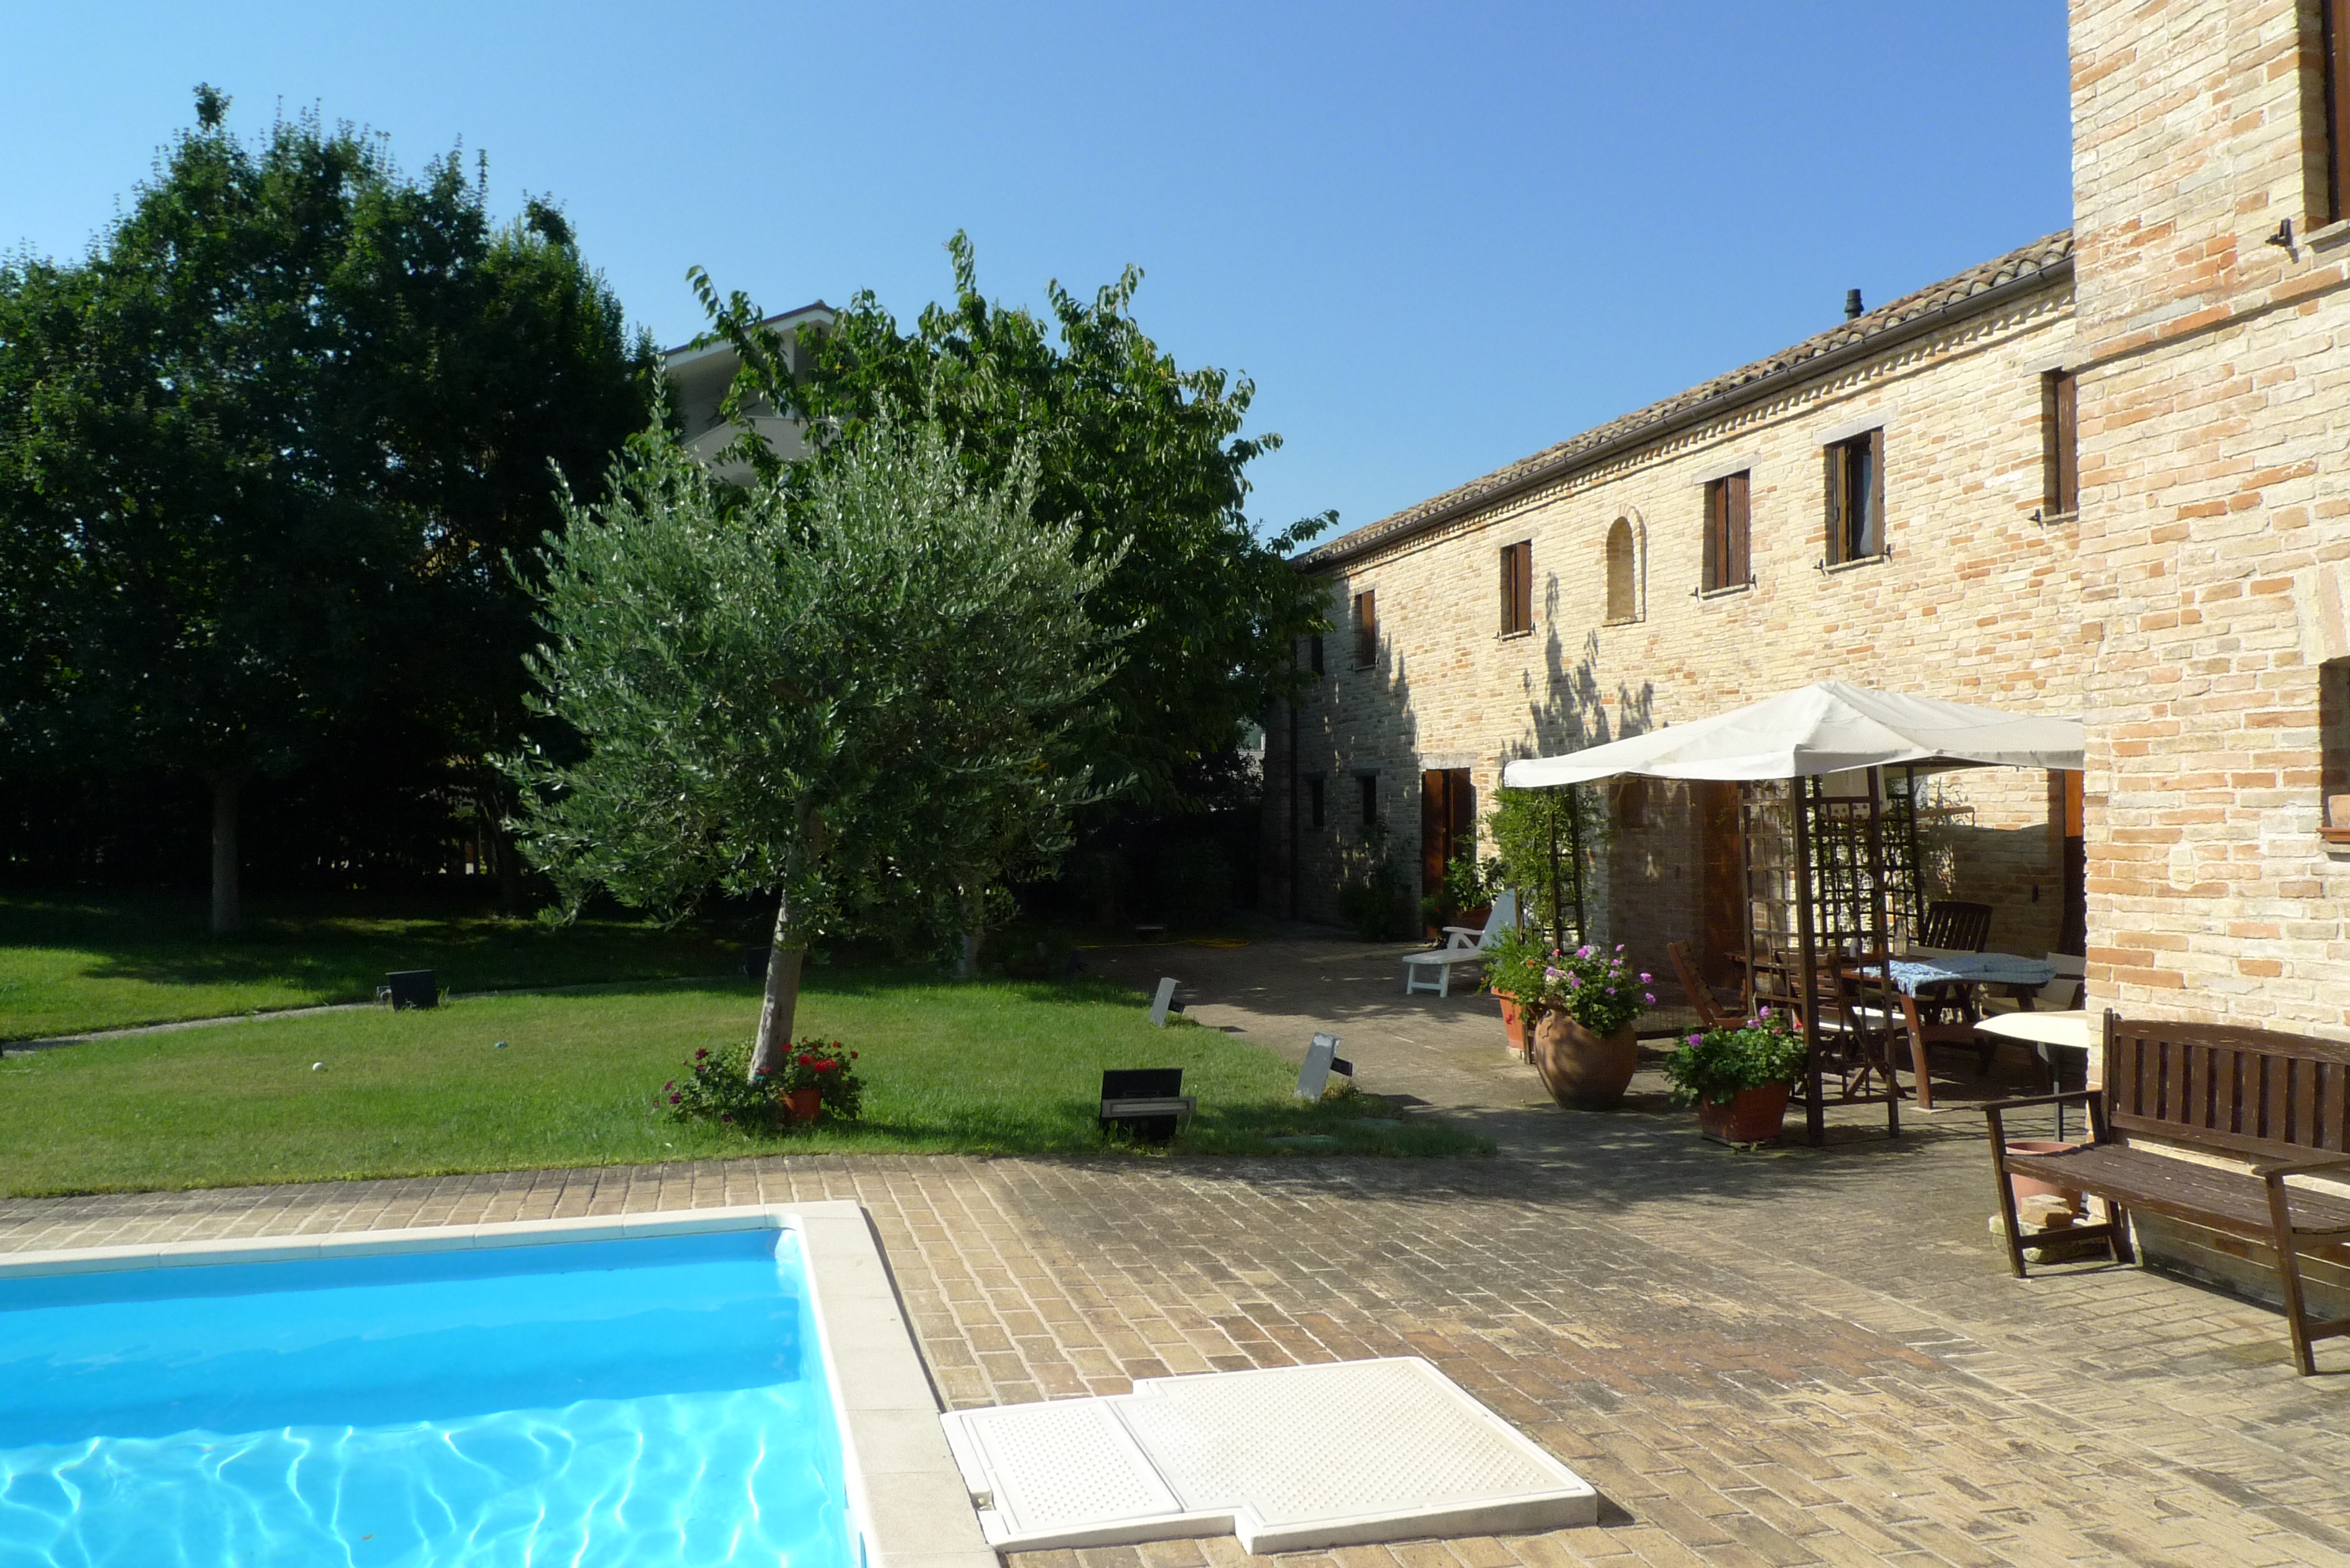 Apartment with private entrance, swimming pool and shared garden, just 8 km from the coast